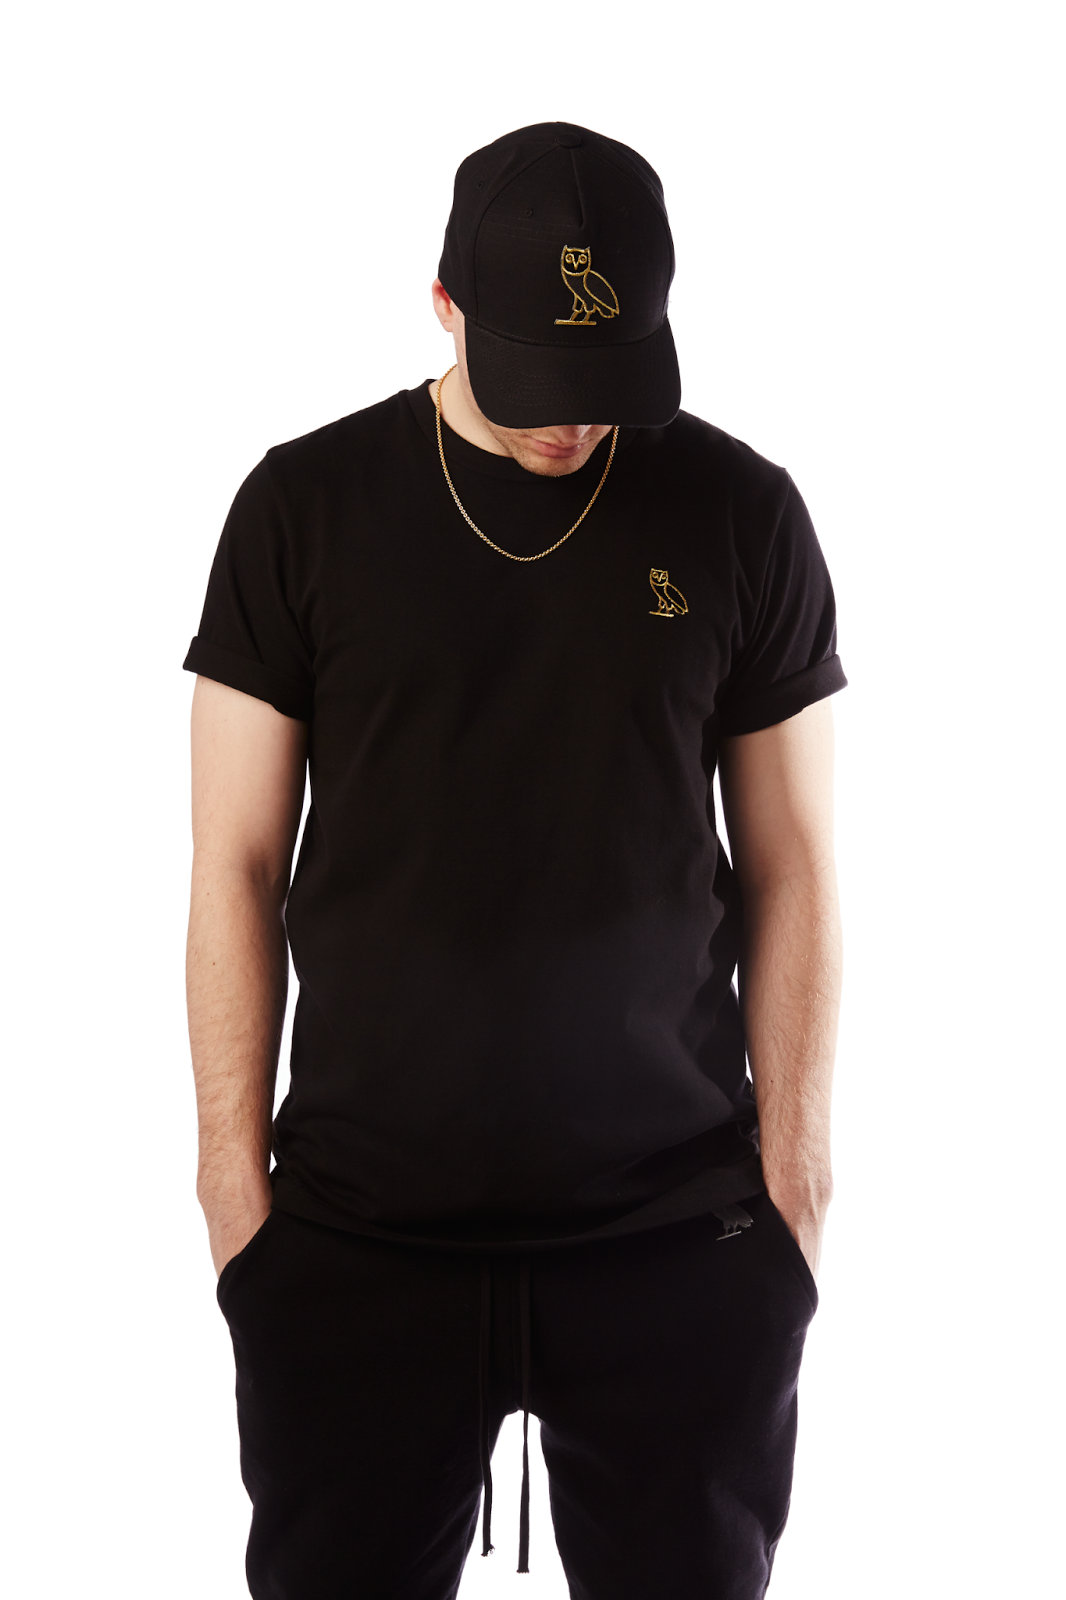 7764064f153e6  OVO  October s Very Own  2014 December Collection (OUT NOW ...